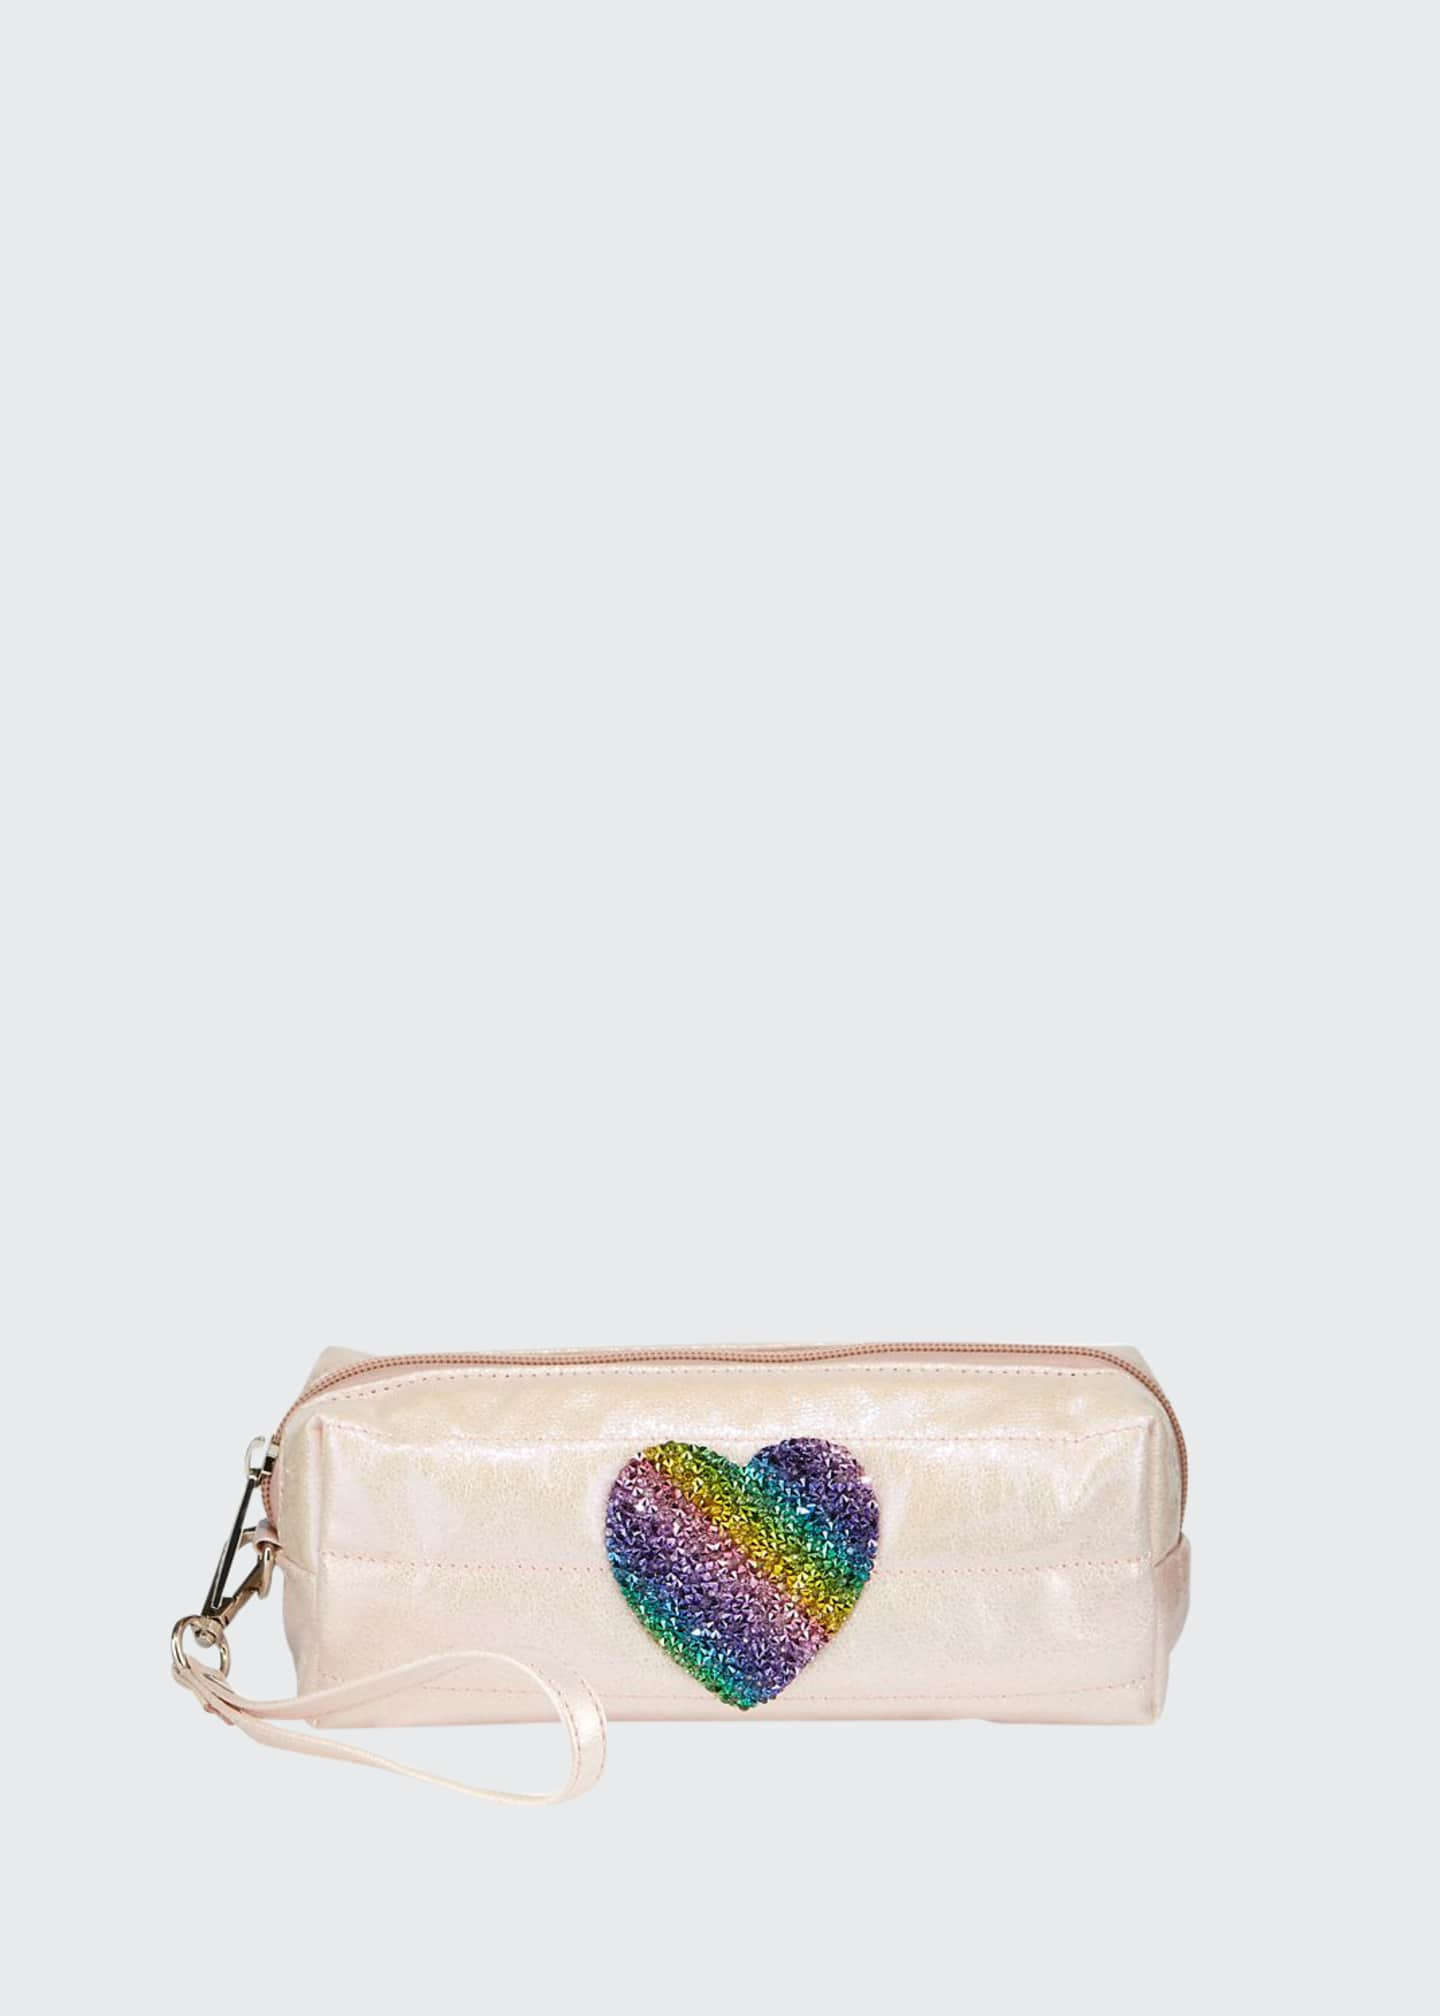 Bari Lynn Puffy Pencil Case with Rainbow Heart